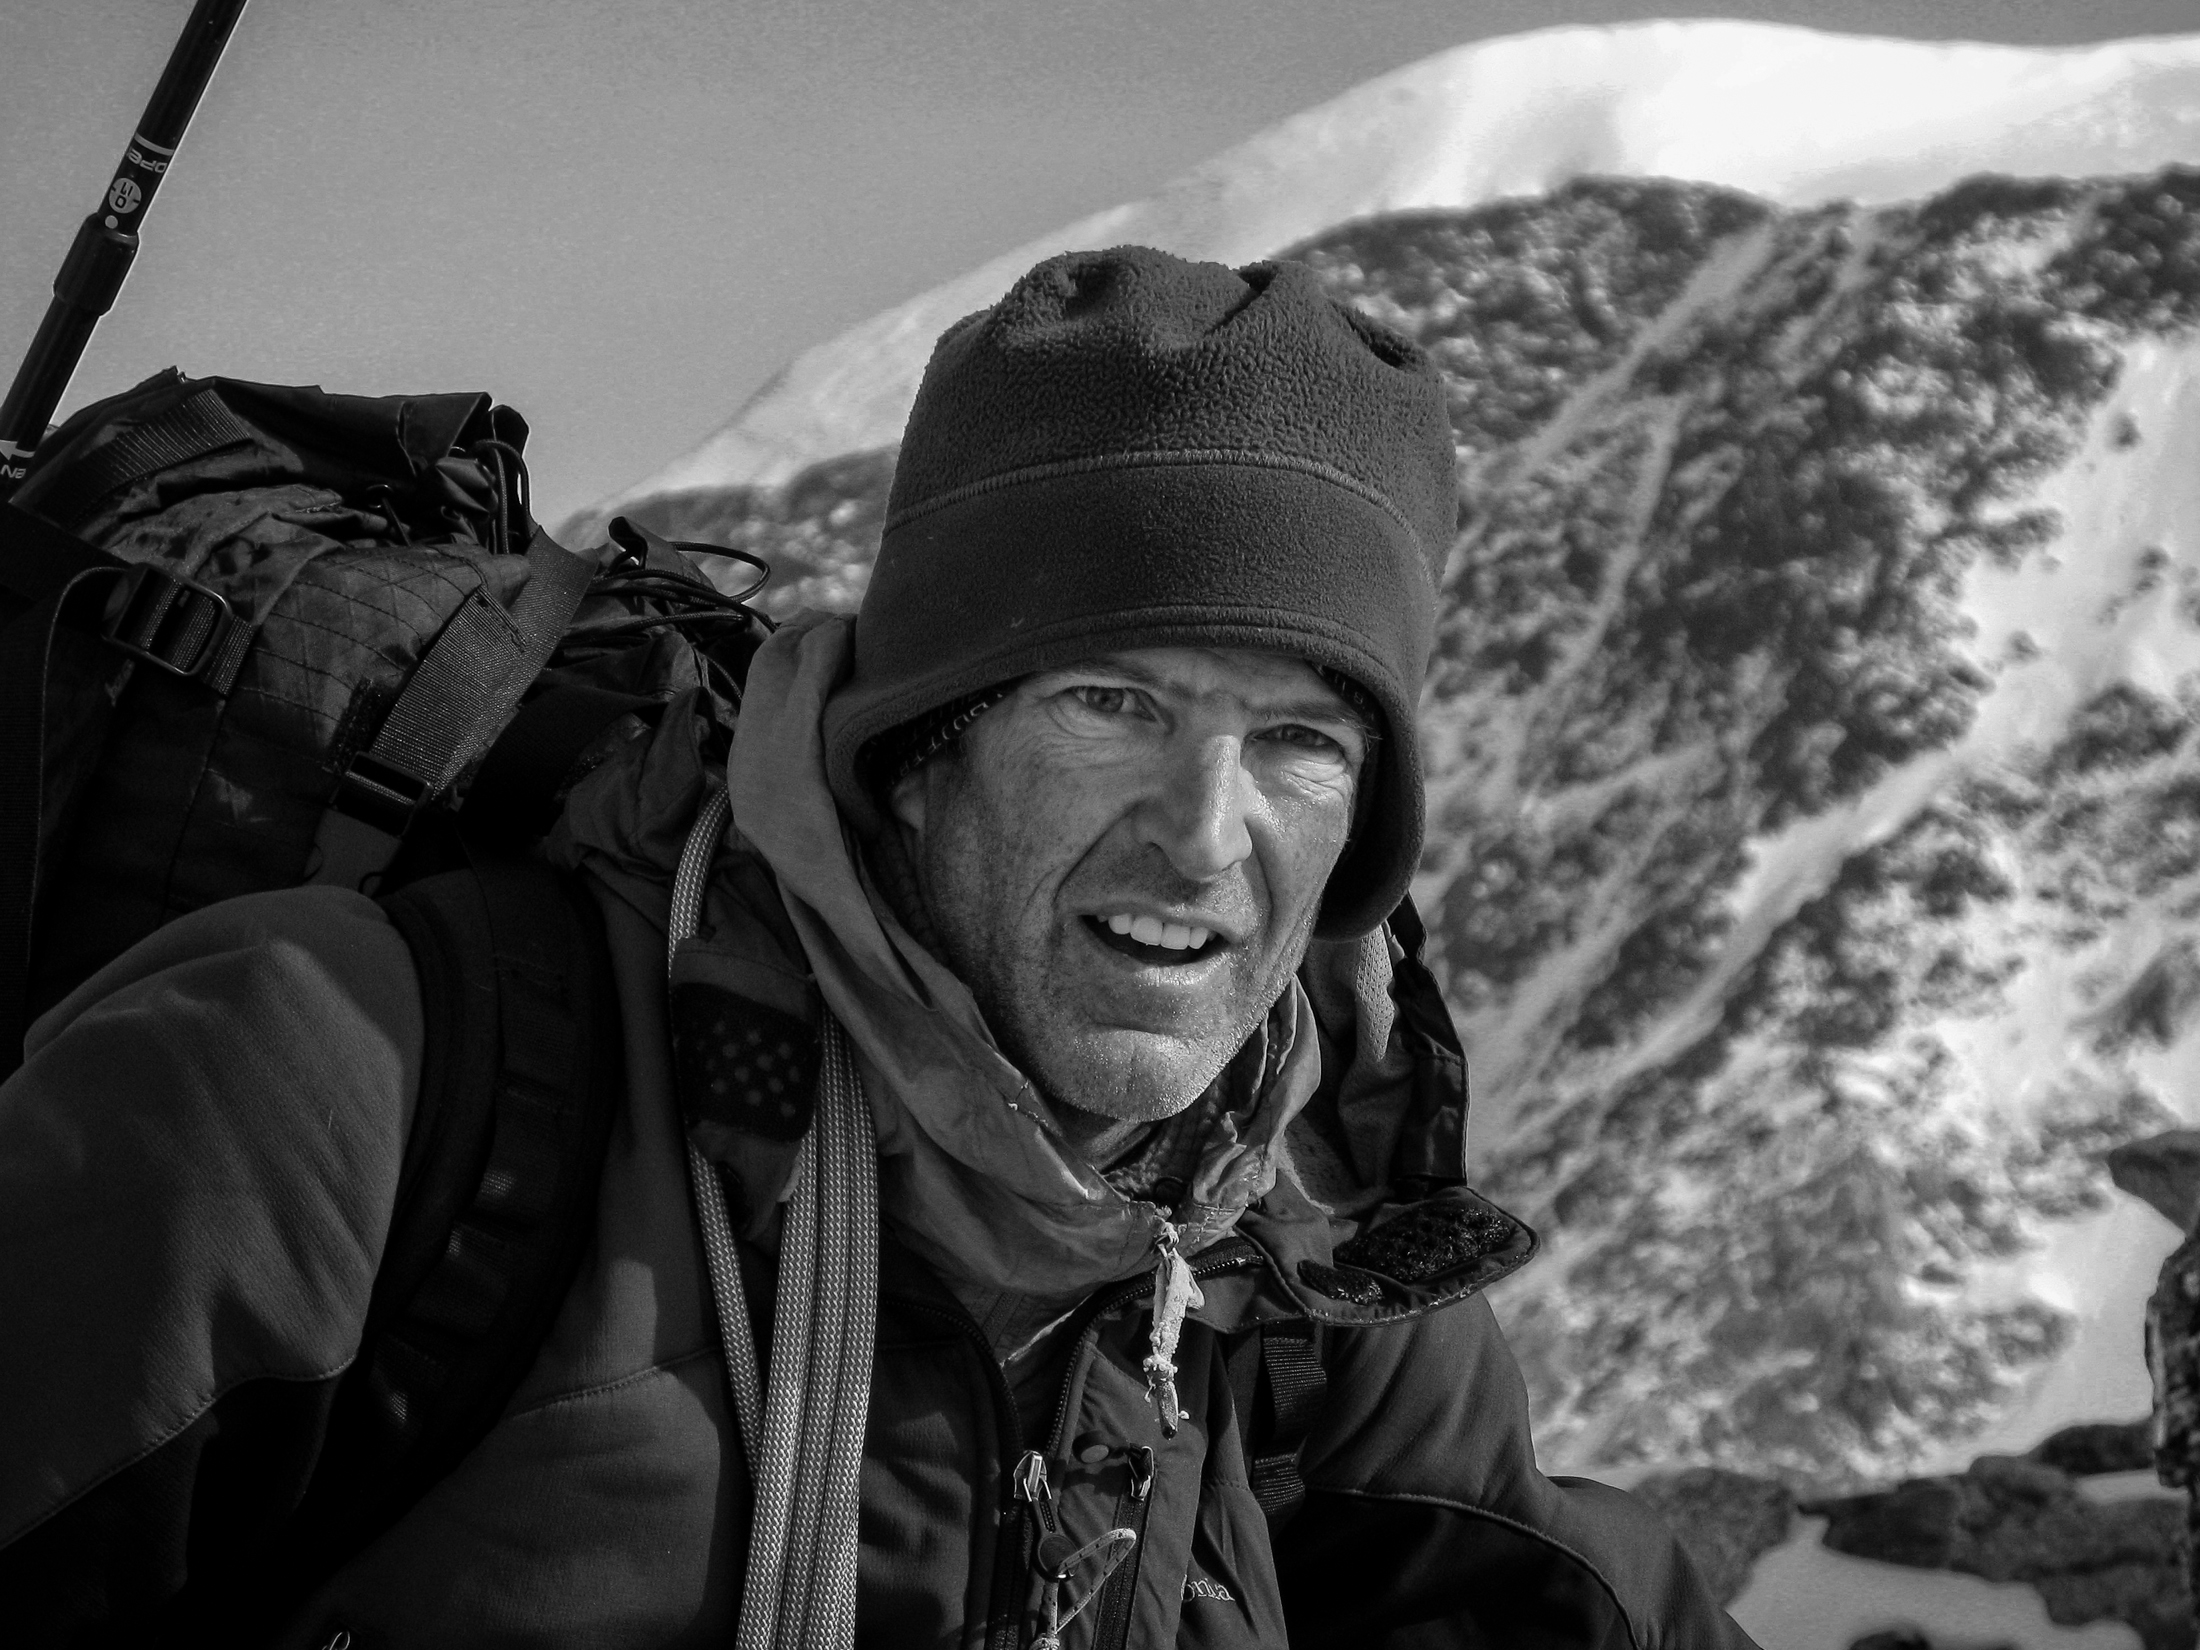 Mark Twight, pictured here on Denali (20,310') in 2009, is receiving the Robert and Miriam Underhill Award [Photo] Courtesy of the American Alpine Club